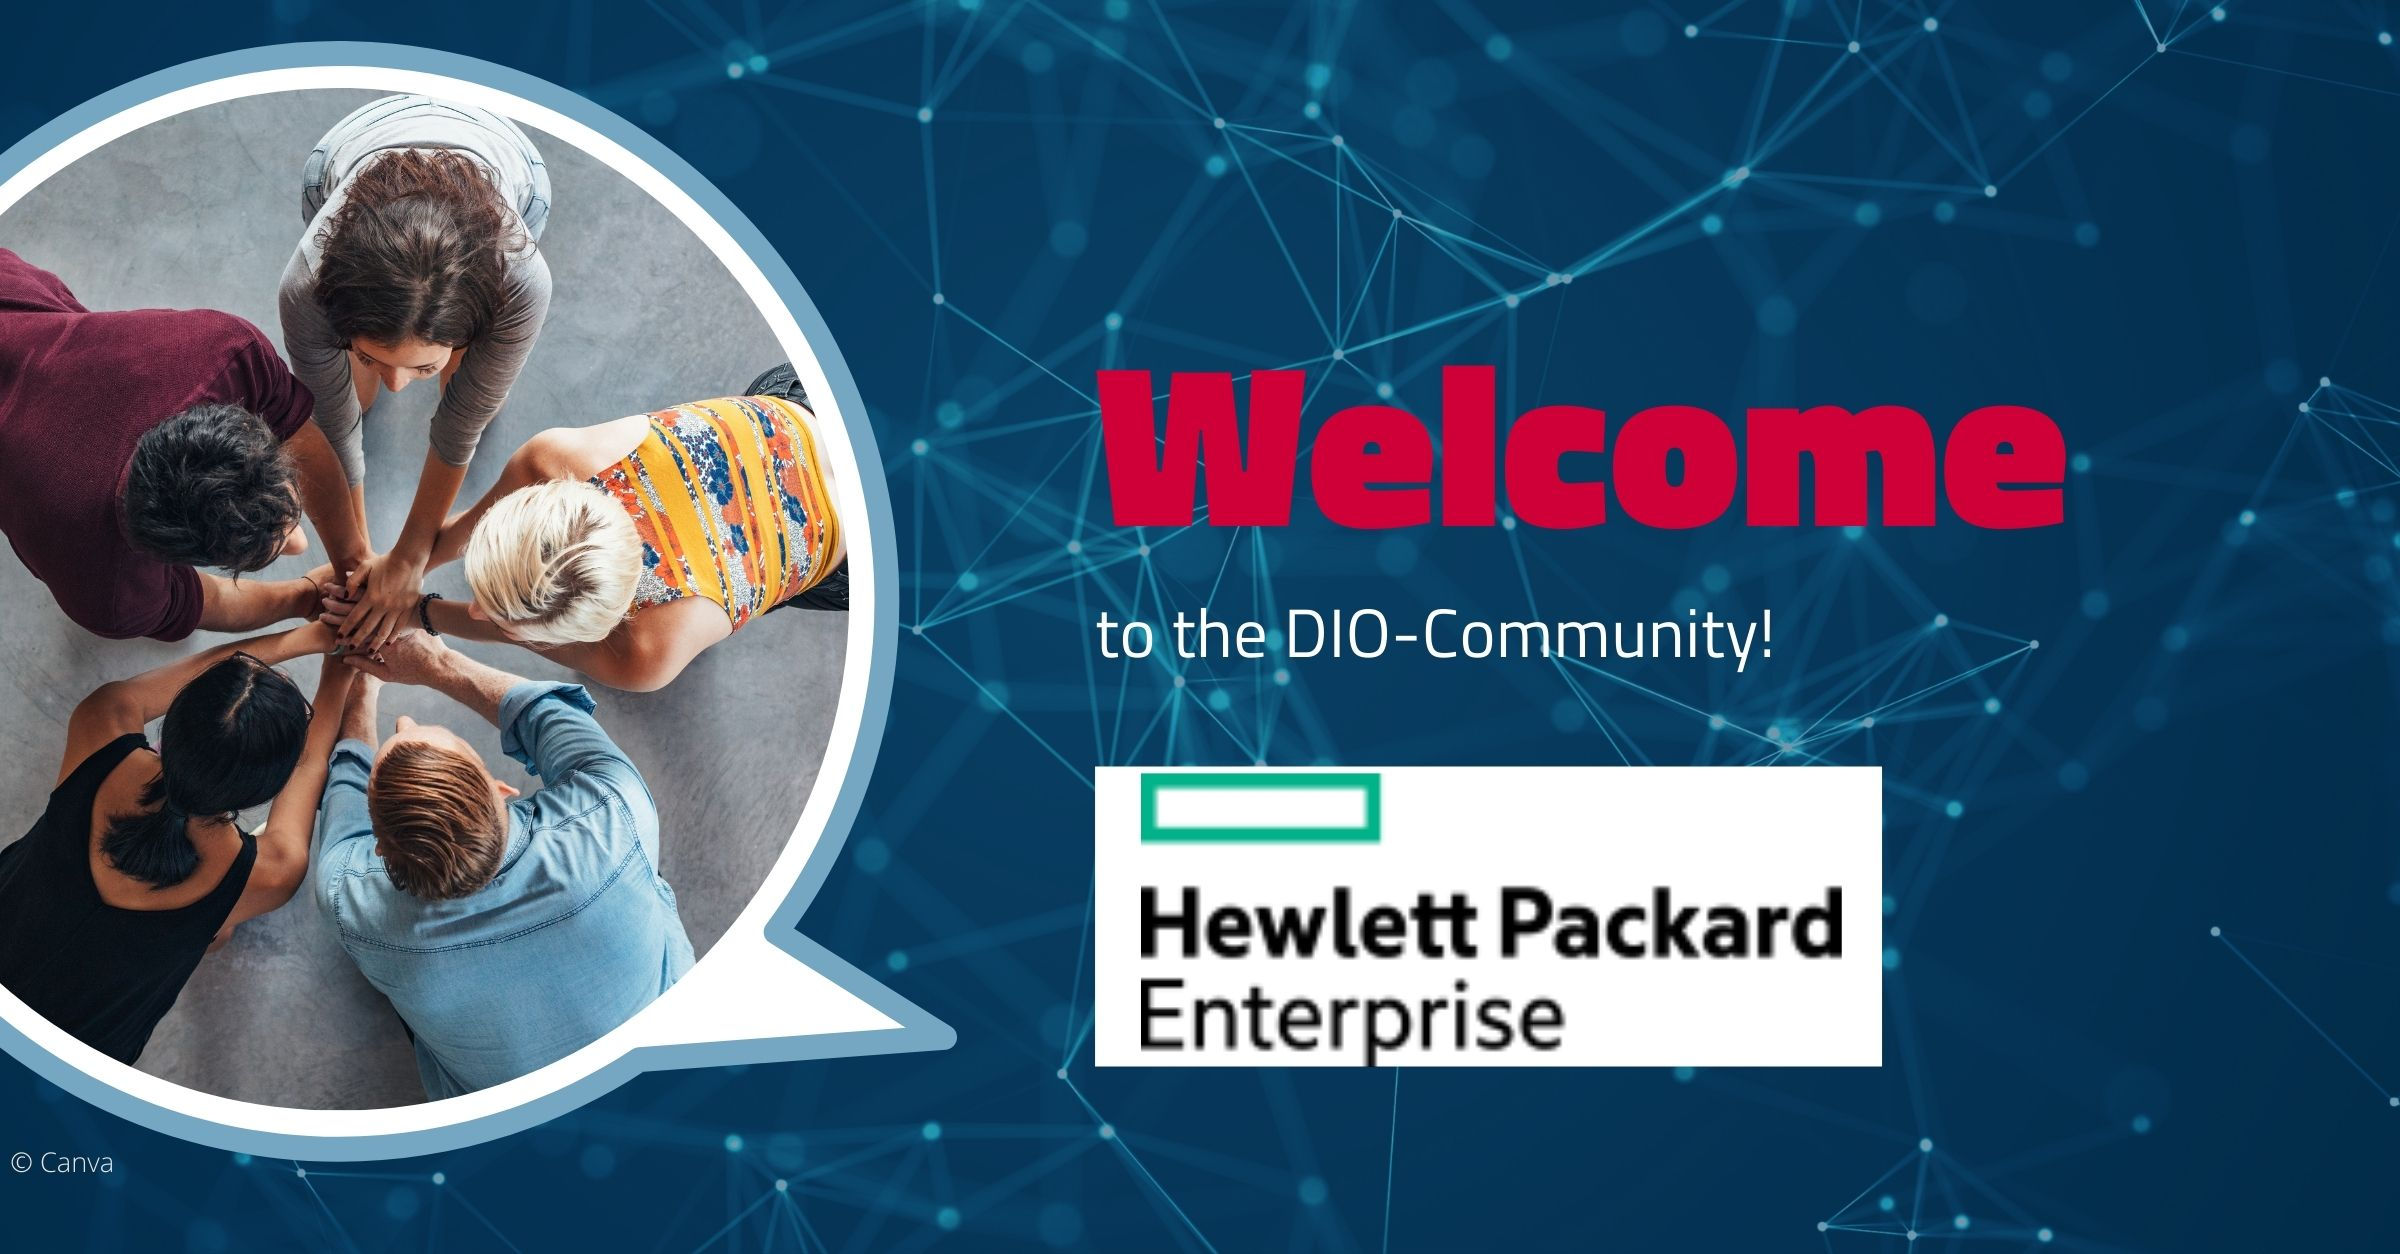 Welcome HPE